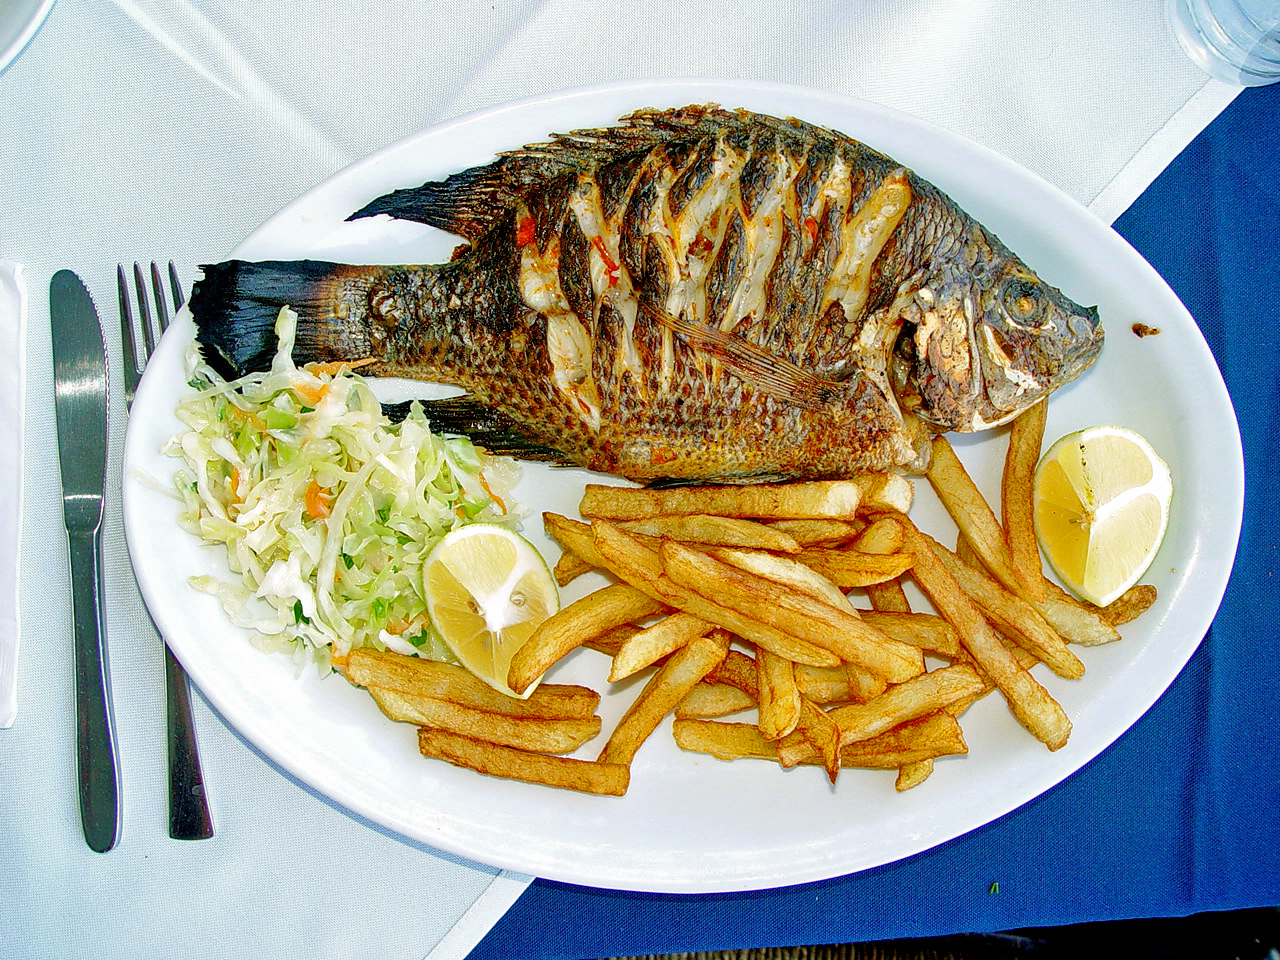 Whole fish meal